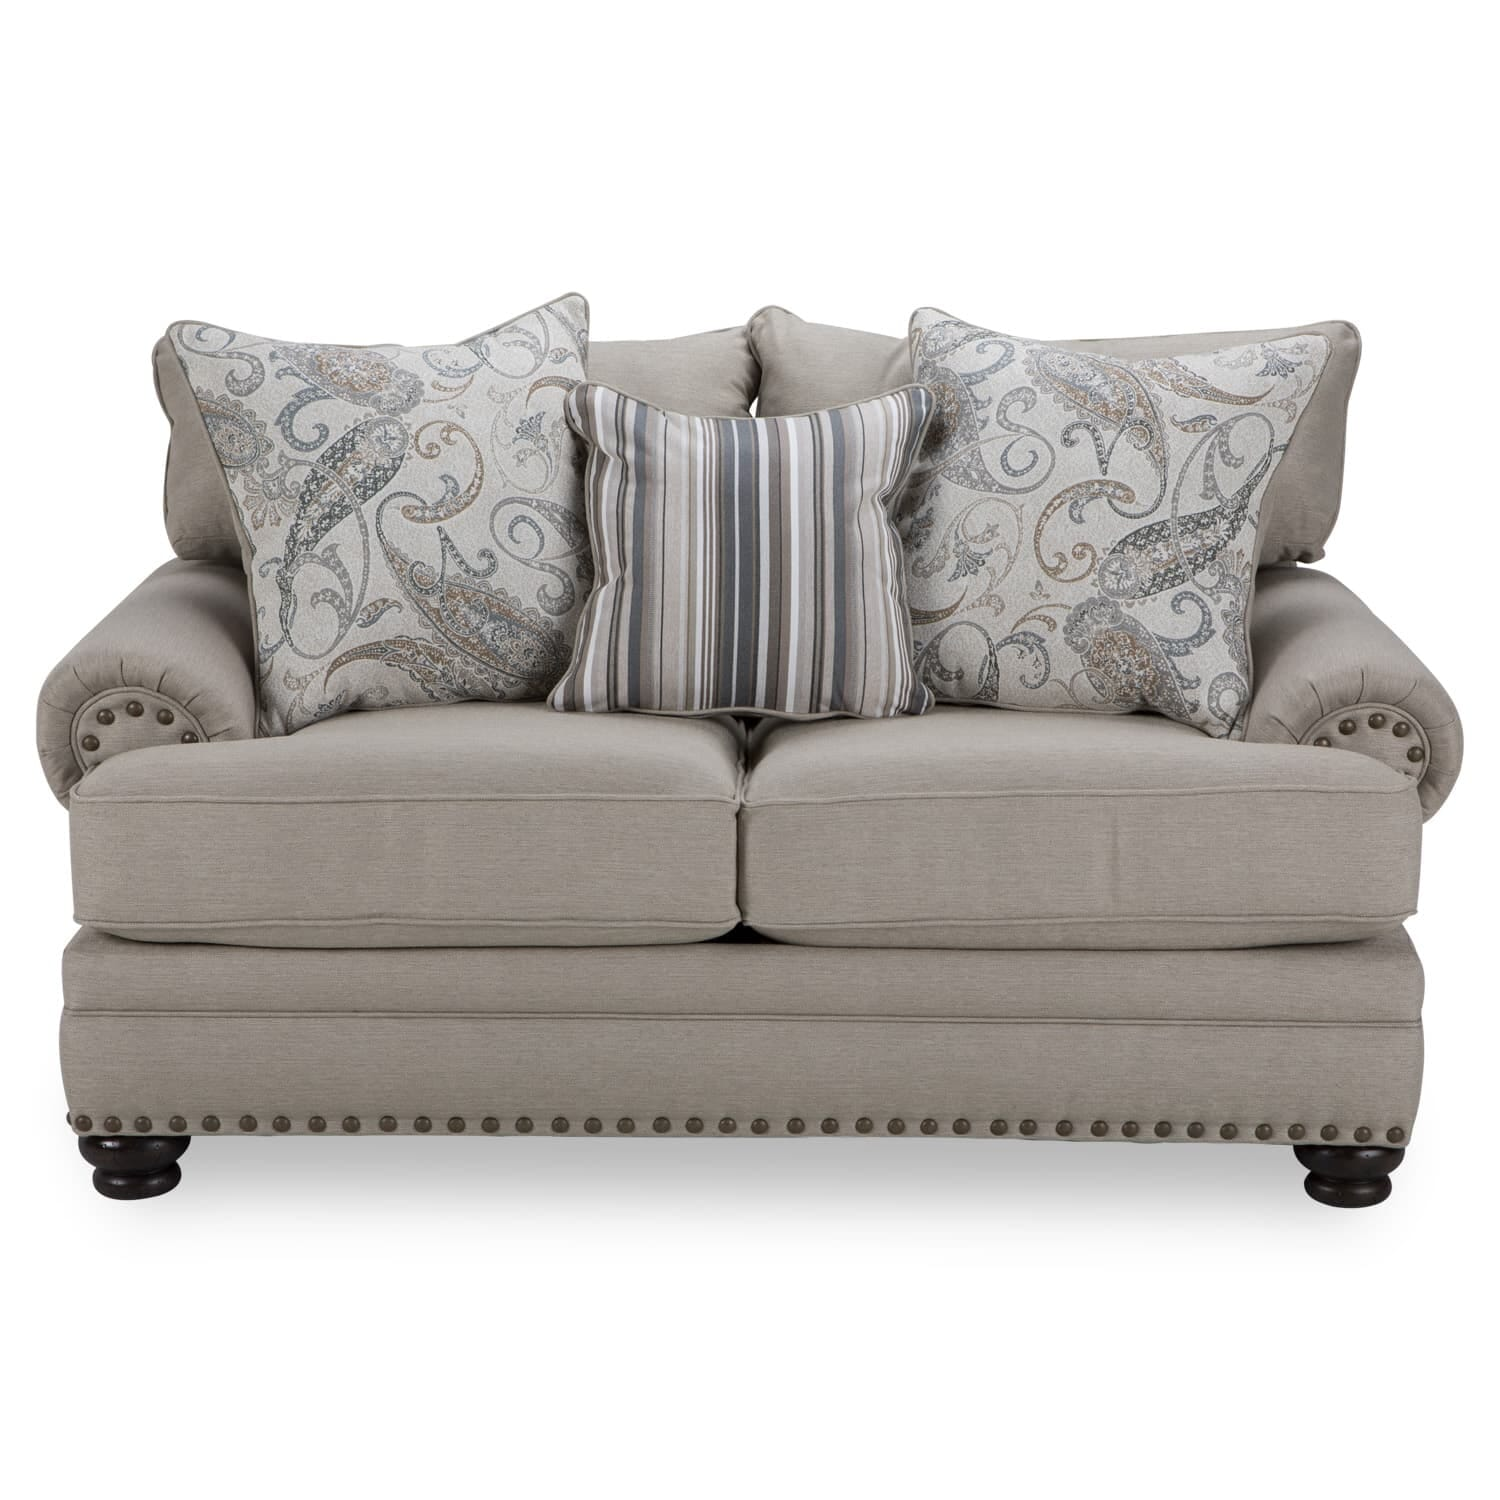 Living Room Furniture Sales: Furniture Sales From WG&R In Wisconsin